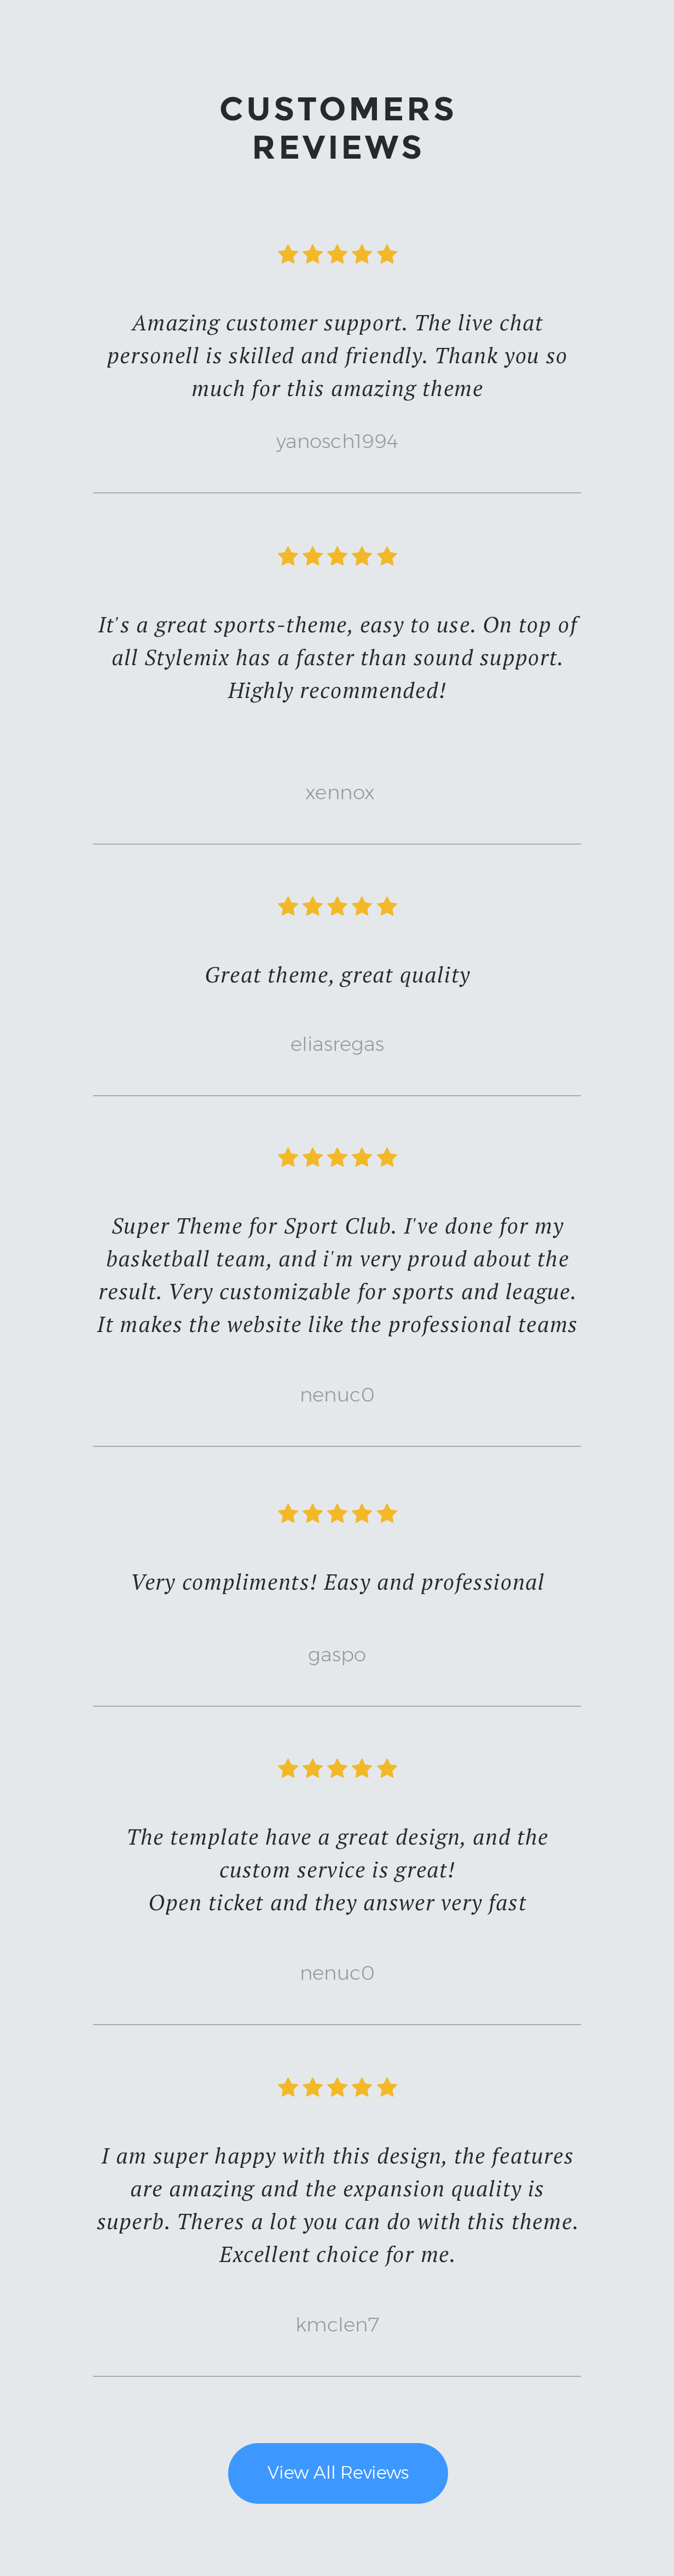 Splash Sport - WordPress Sports Theme for Basketball, Football, Soccer and Baseball Clubs - 1  Download Splash Sport – WordPress Sports Theme for Basketball, Football, Soccer and Baseball Clubs nulled splash